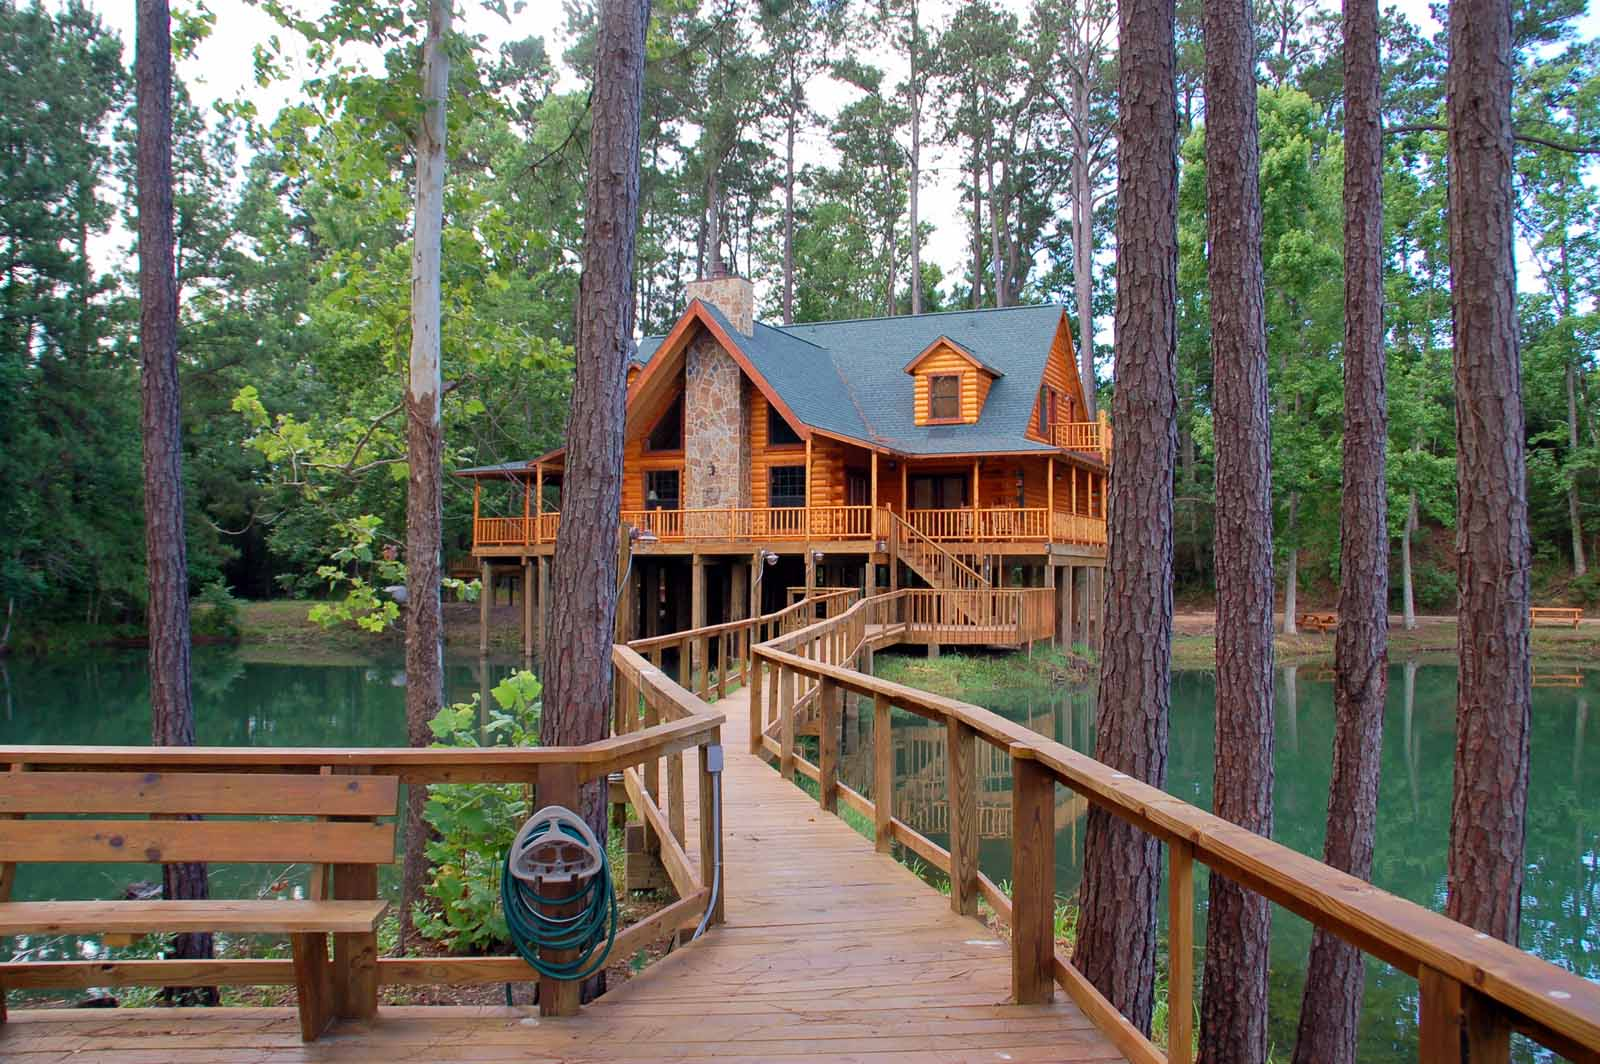 cabins creek lake links drive action weekend deep vacation cabin no worries unit village rentals